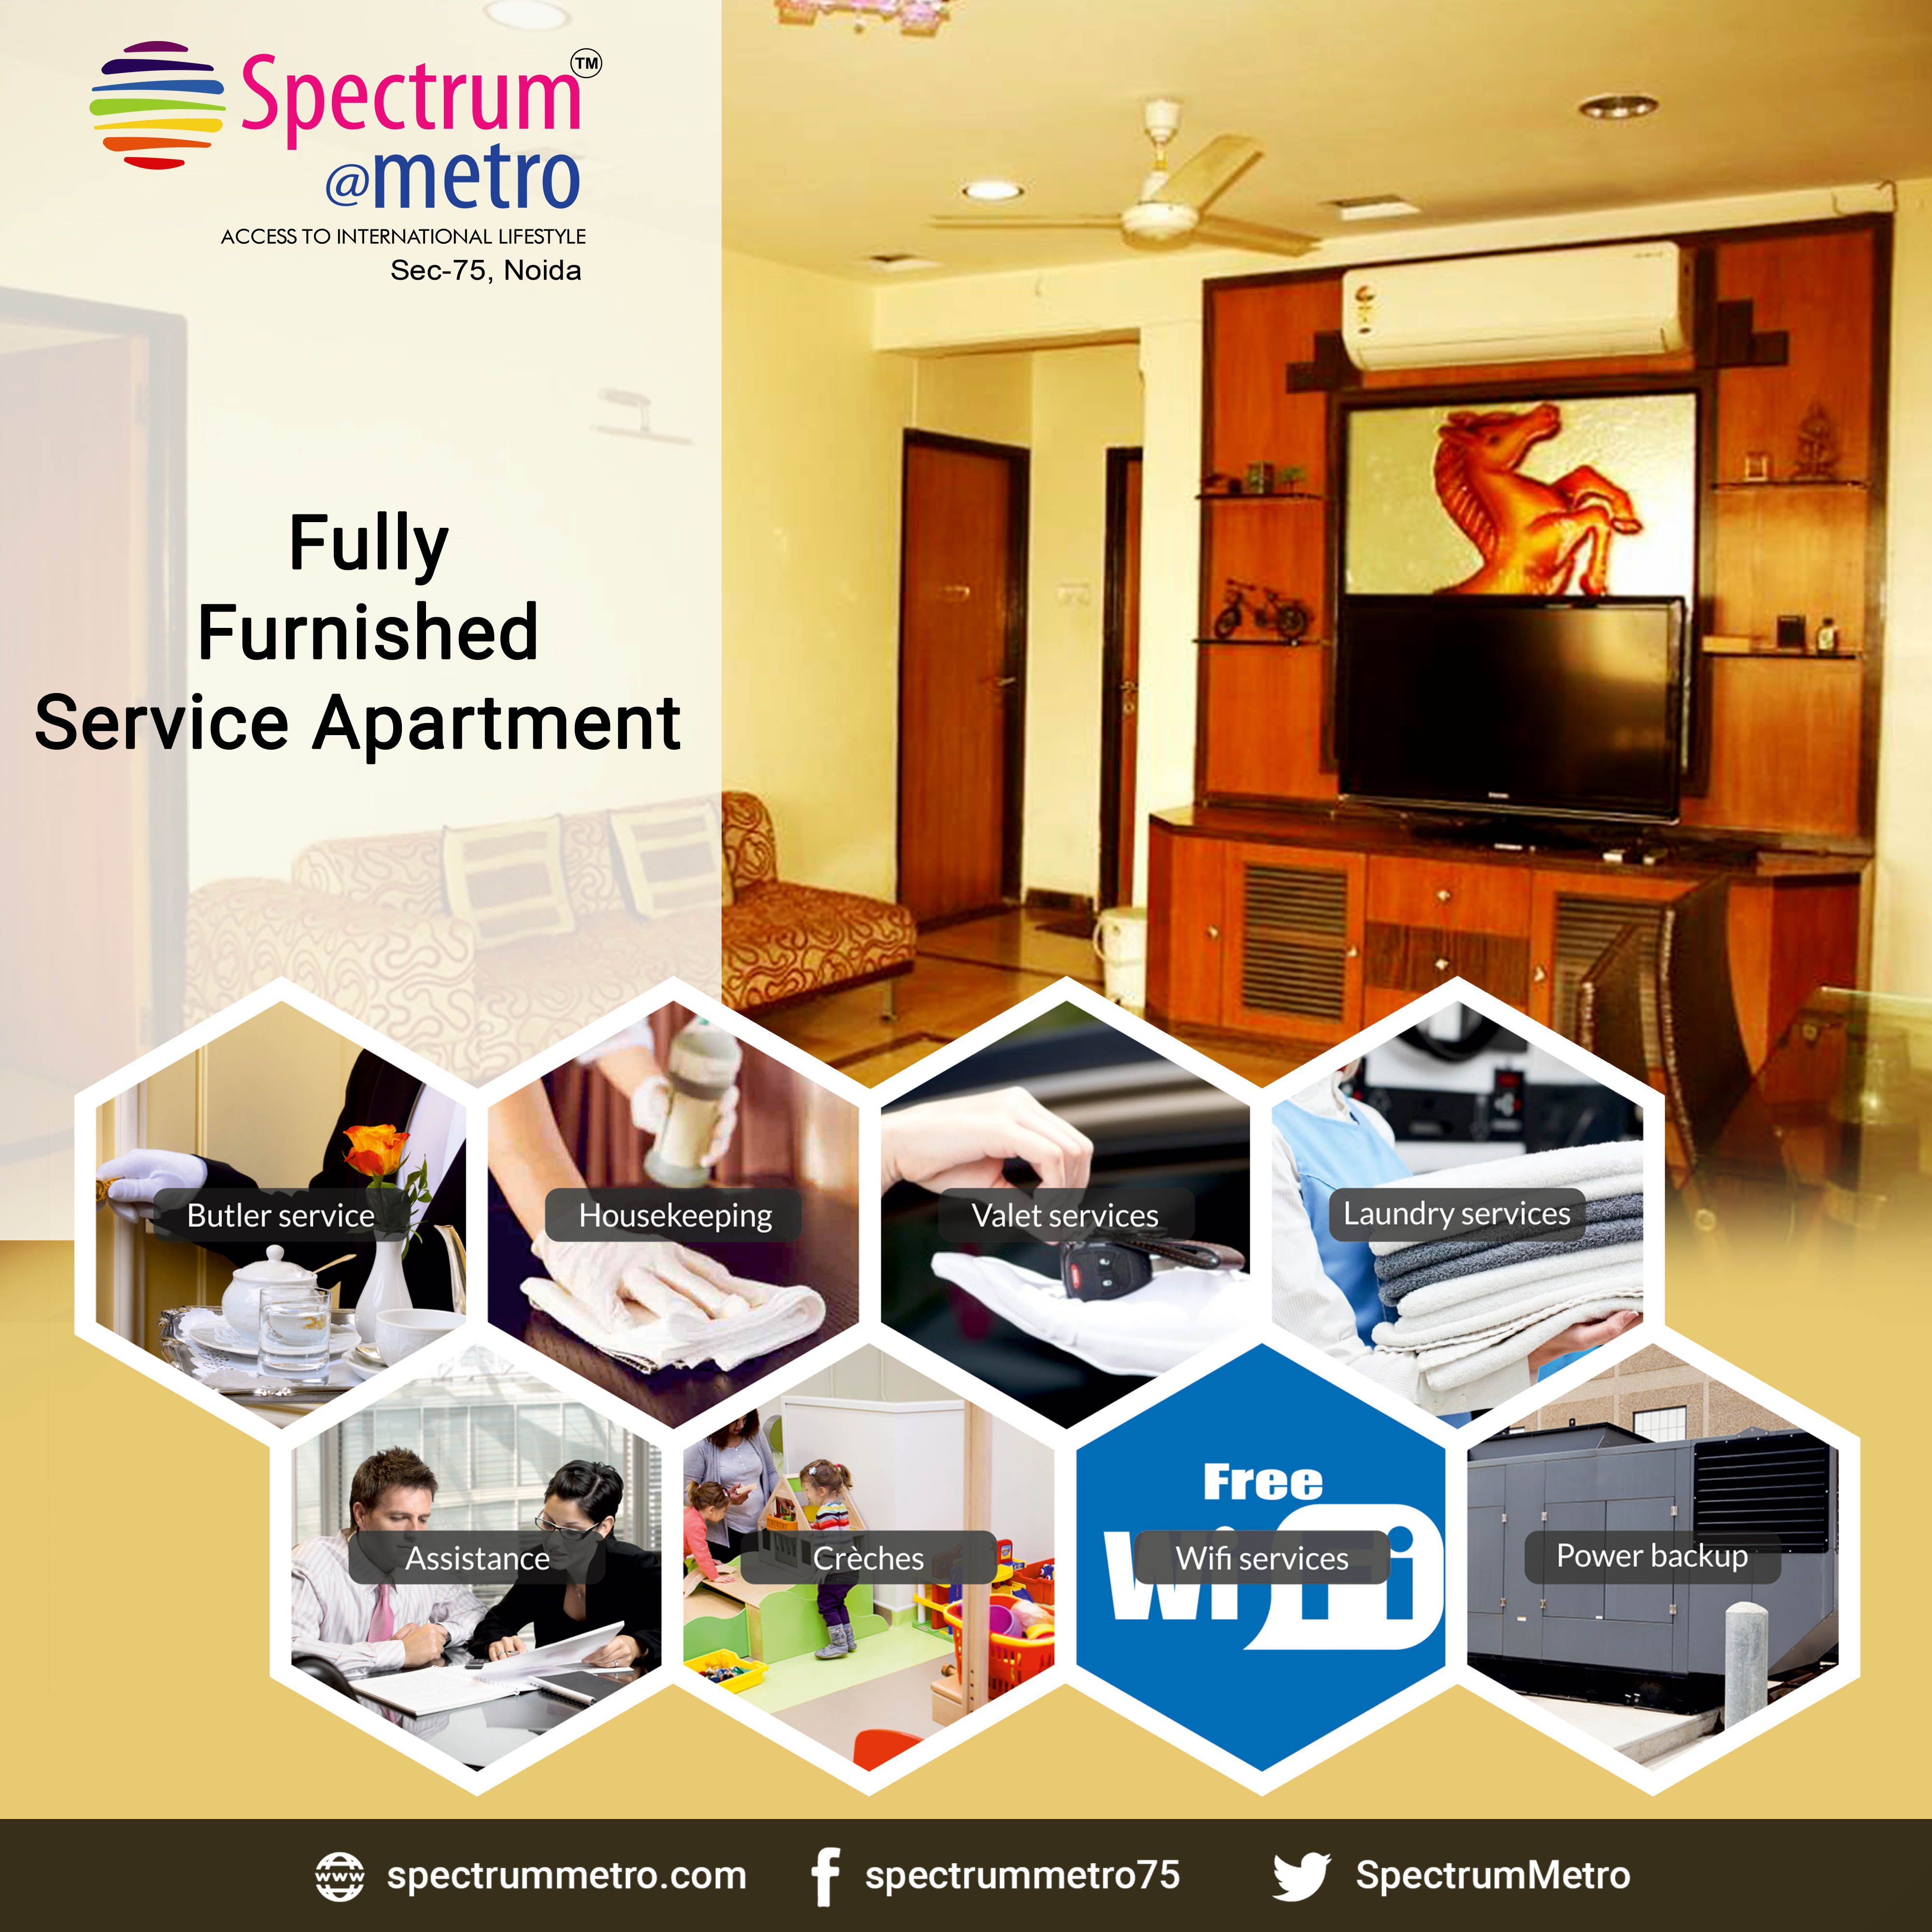 serviced Apartment in Noida